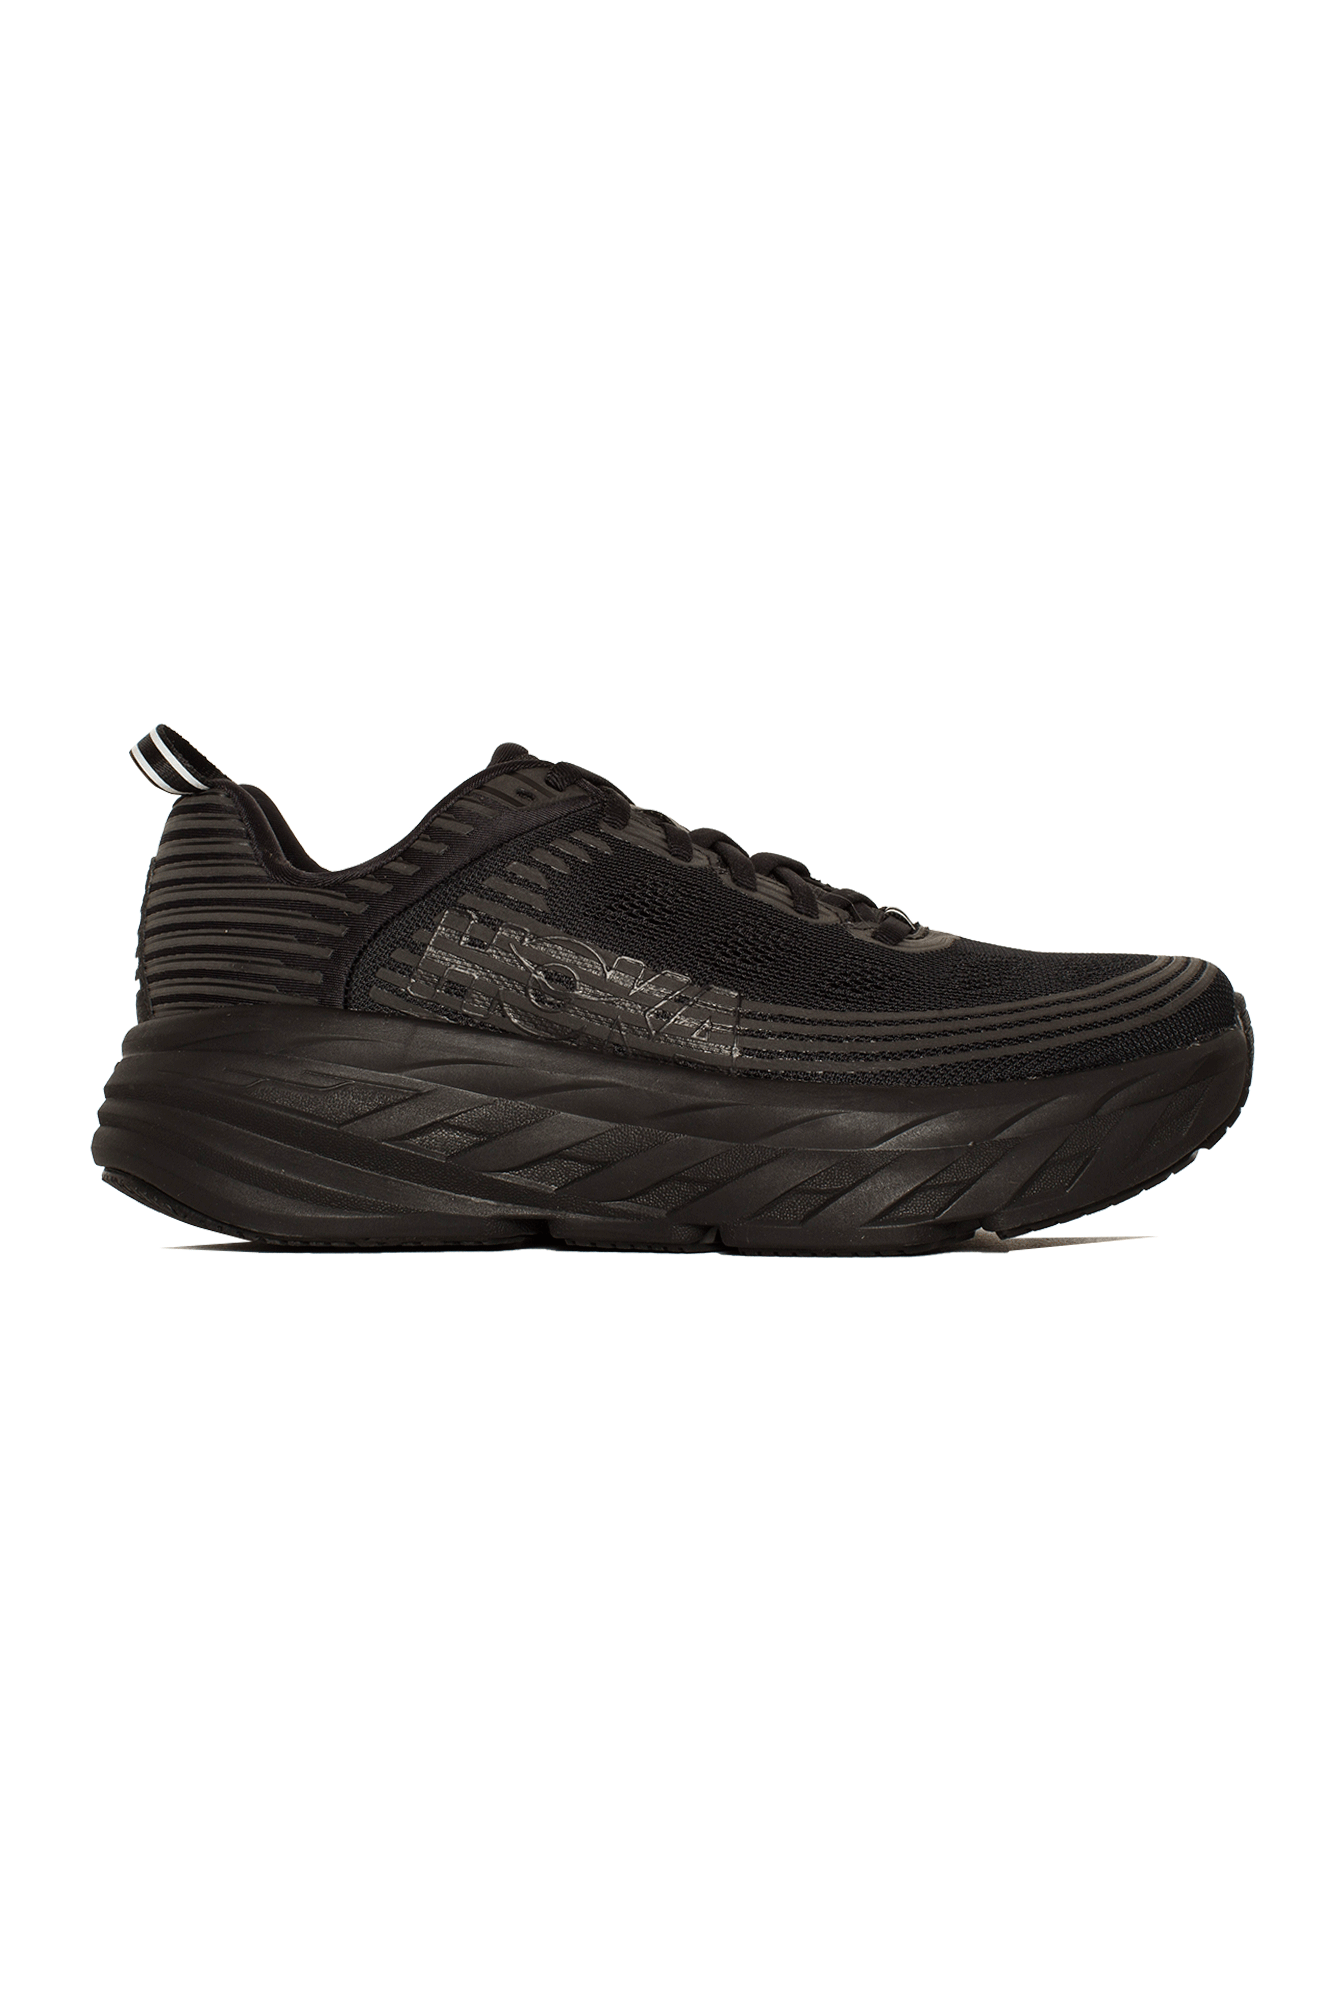 Hoka One One Sneakers Bondi 6 Black HK.1019269#000#BBLC#7 - One Block Down